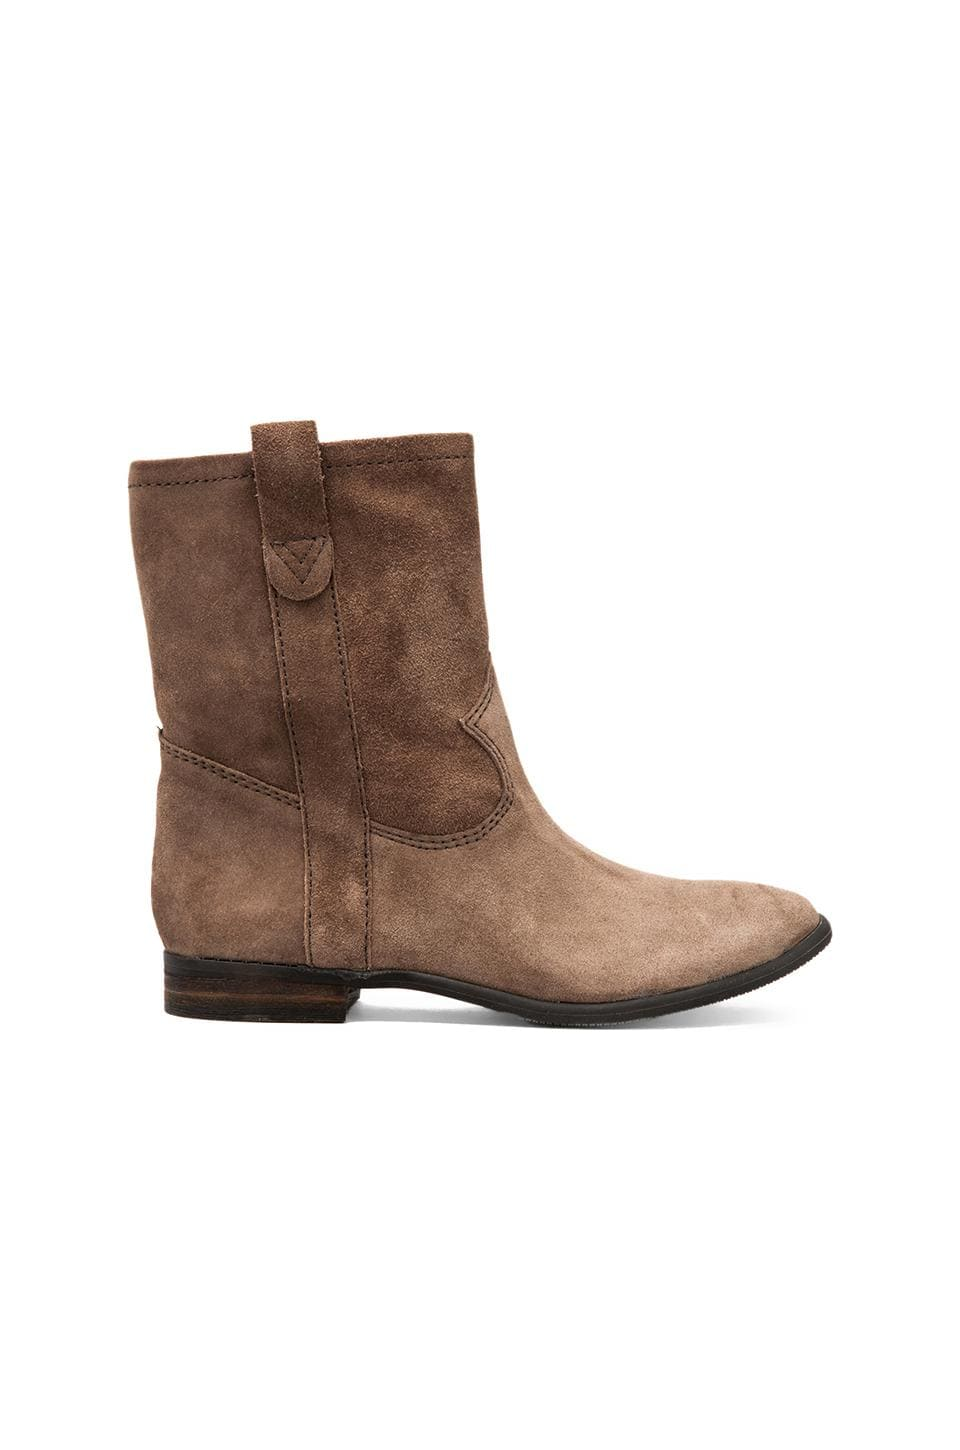 Vince Camuto Fanti Boot in Smoke Taupe